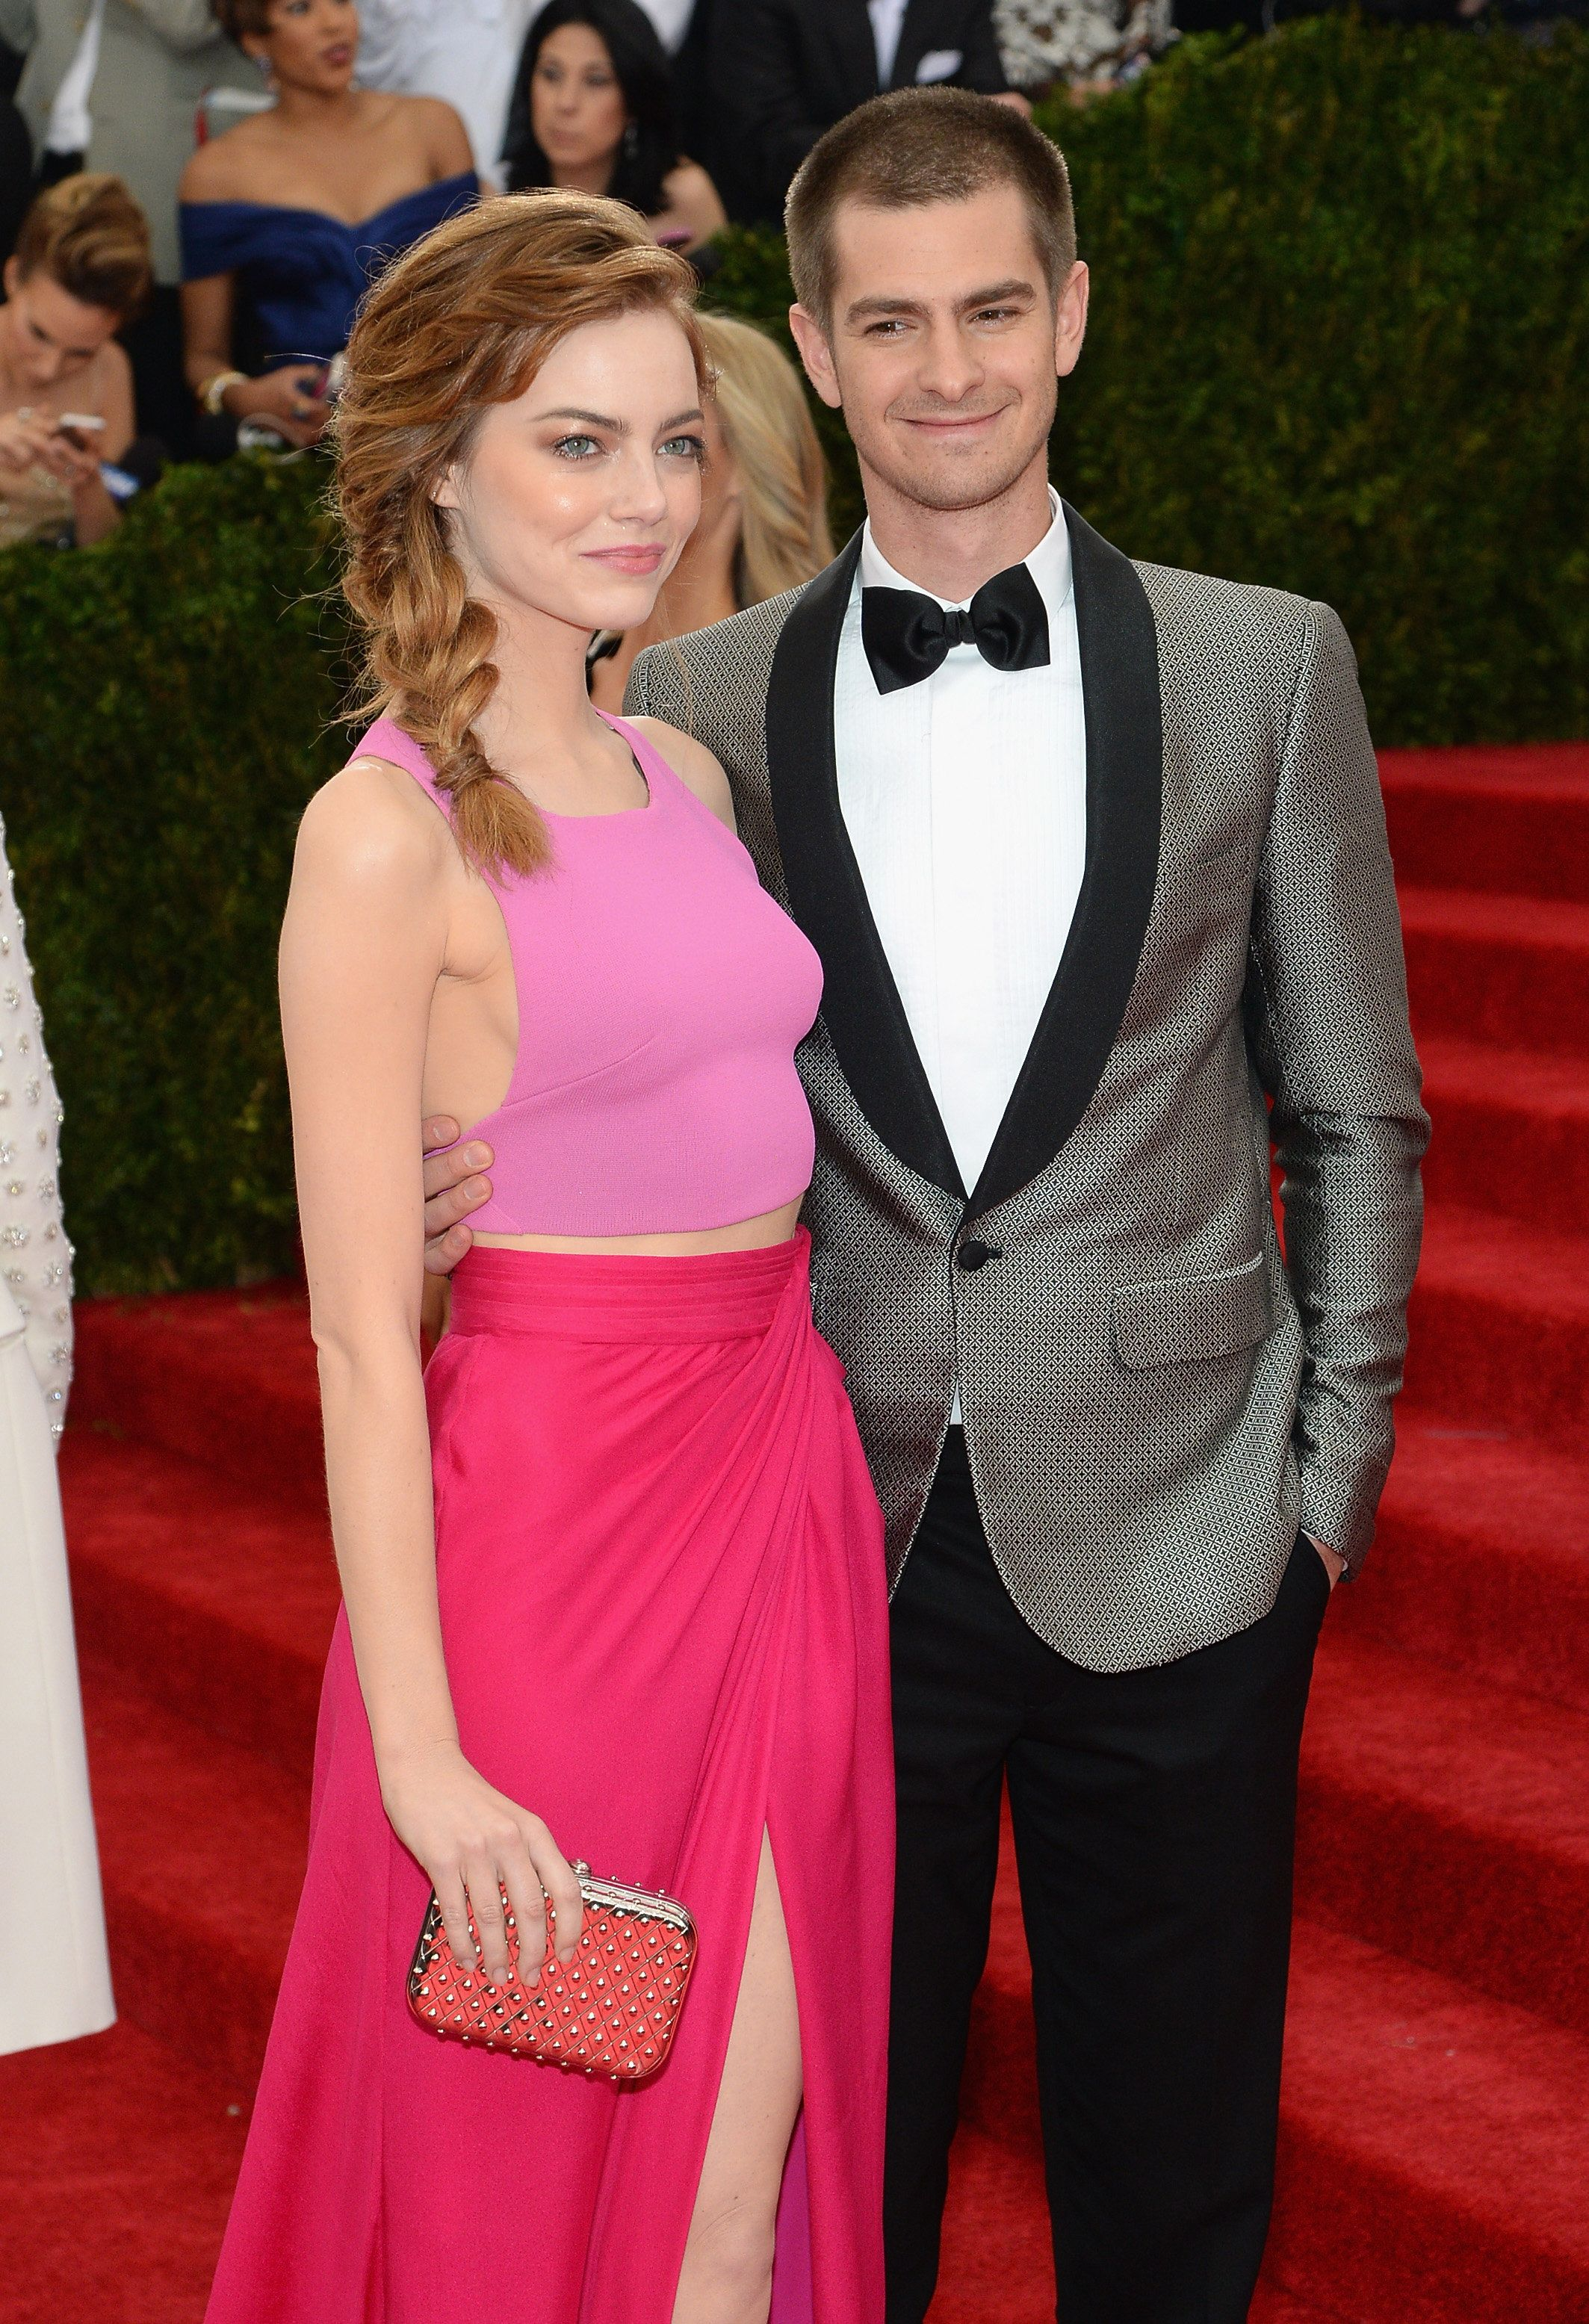 NEW YORK, NY - MAY 05:  Actors Emma Stone and Andrew Garfield attends the 'Charles James: Beyond Fashion' Costume Institute Gala at the Metropolitan Museum of Art on May 5, 2014 in New York City.  (Photo by Dimitrios Kambouris/Getty Images)